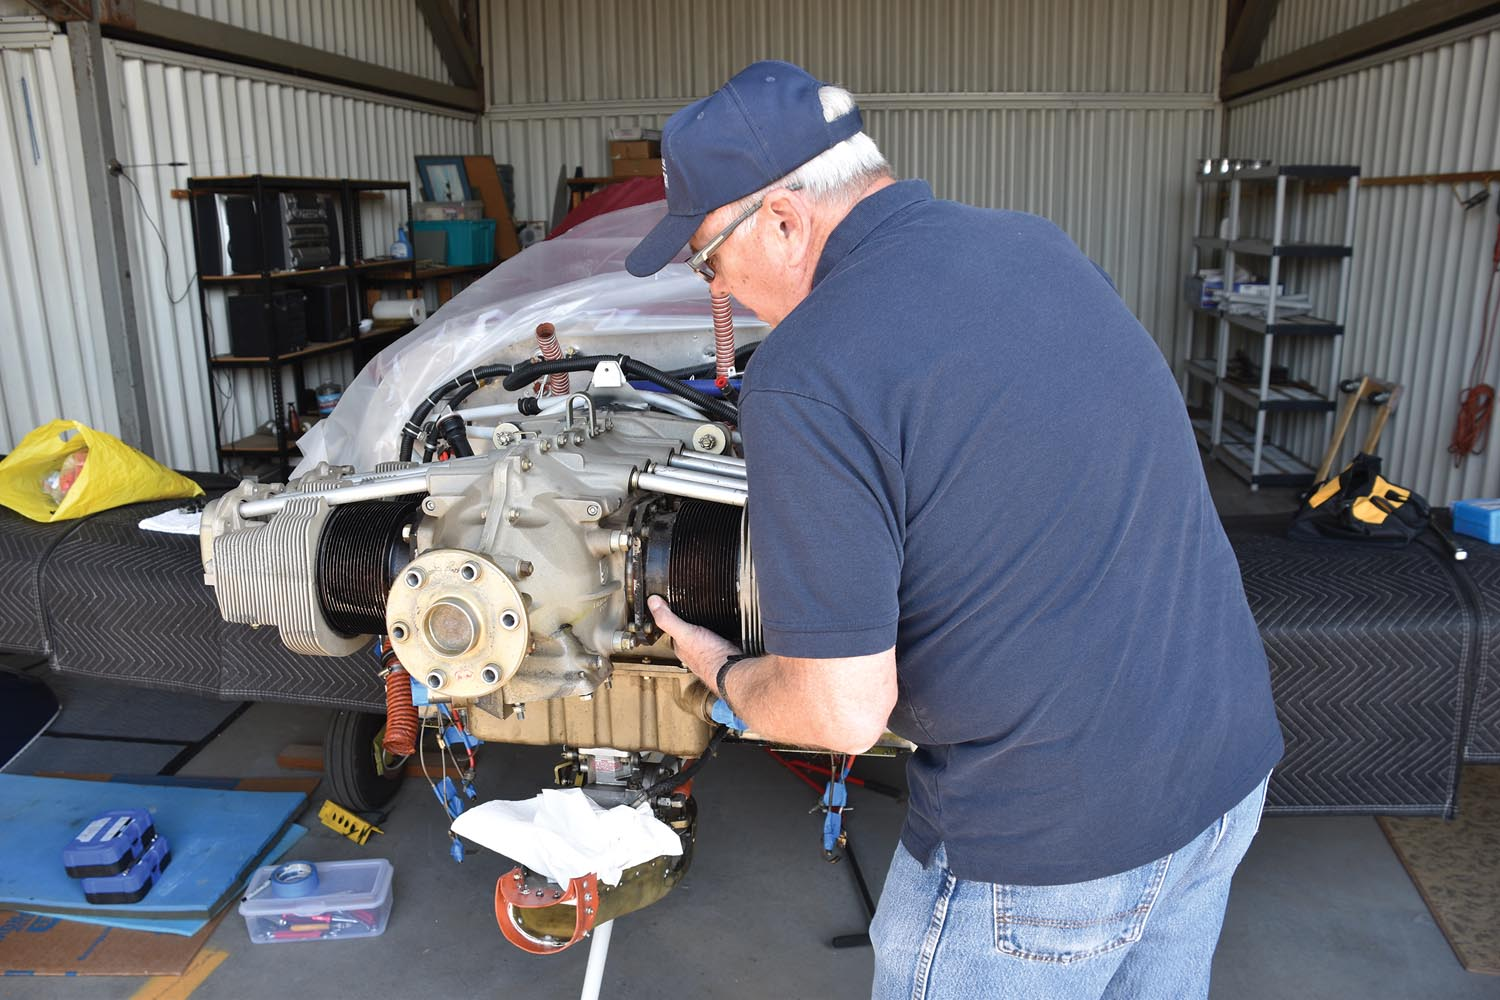 Owner Bill Palmer removes a cylinder after first determining that there was significant rust in the cylinder with a borescope examination. This recently acquired RV-6A was bought with full knowledge that there were problems with the engine and was priced accordingly.